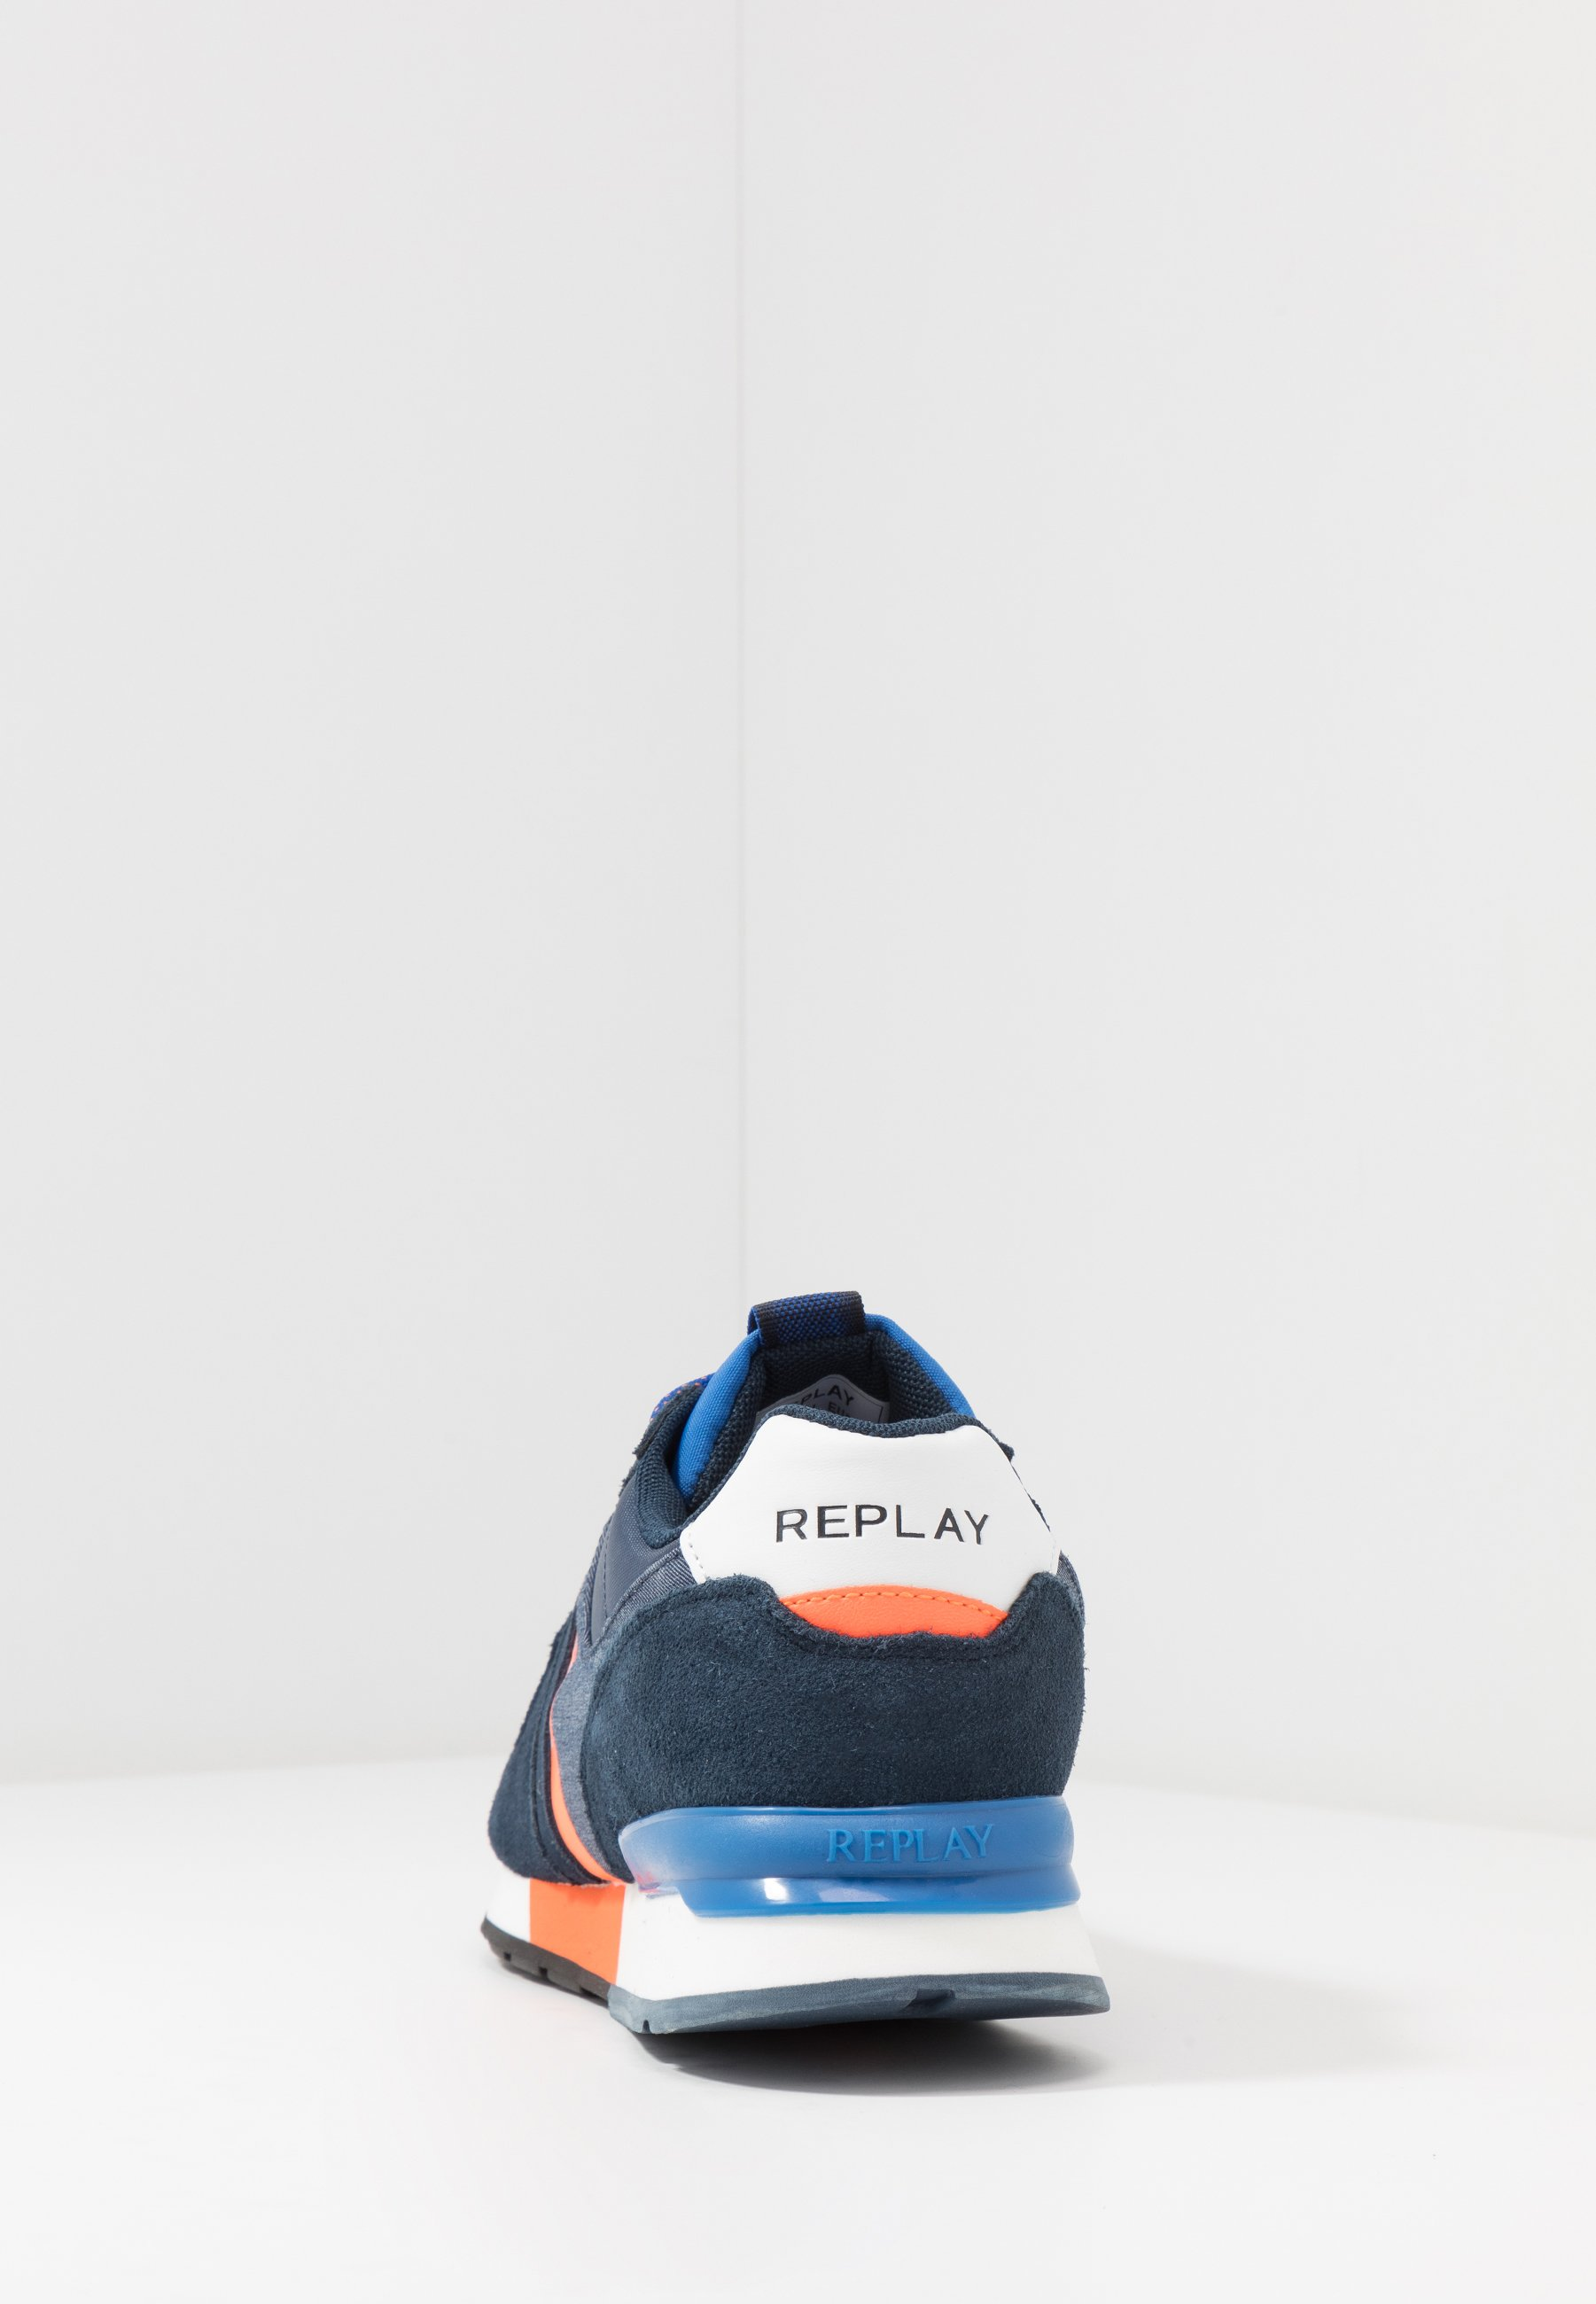 Replay Tigher - Sneakers Navy/orange